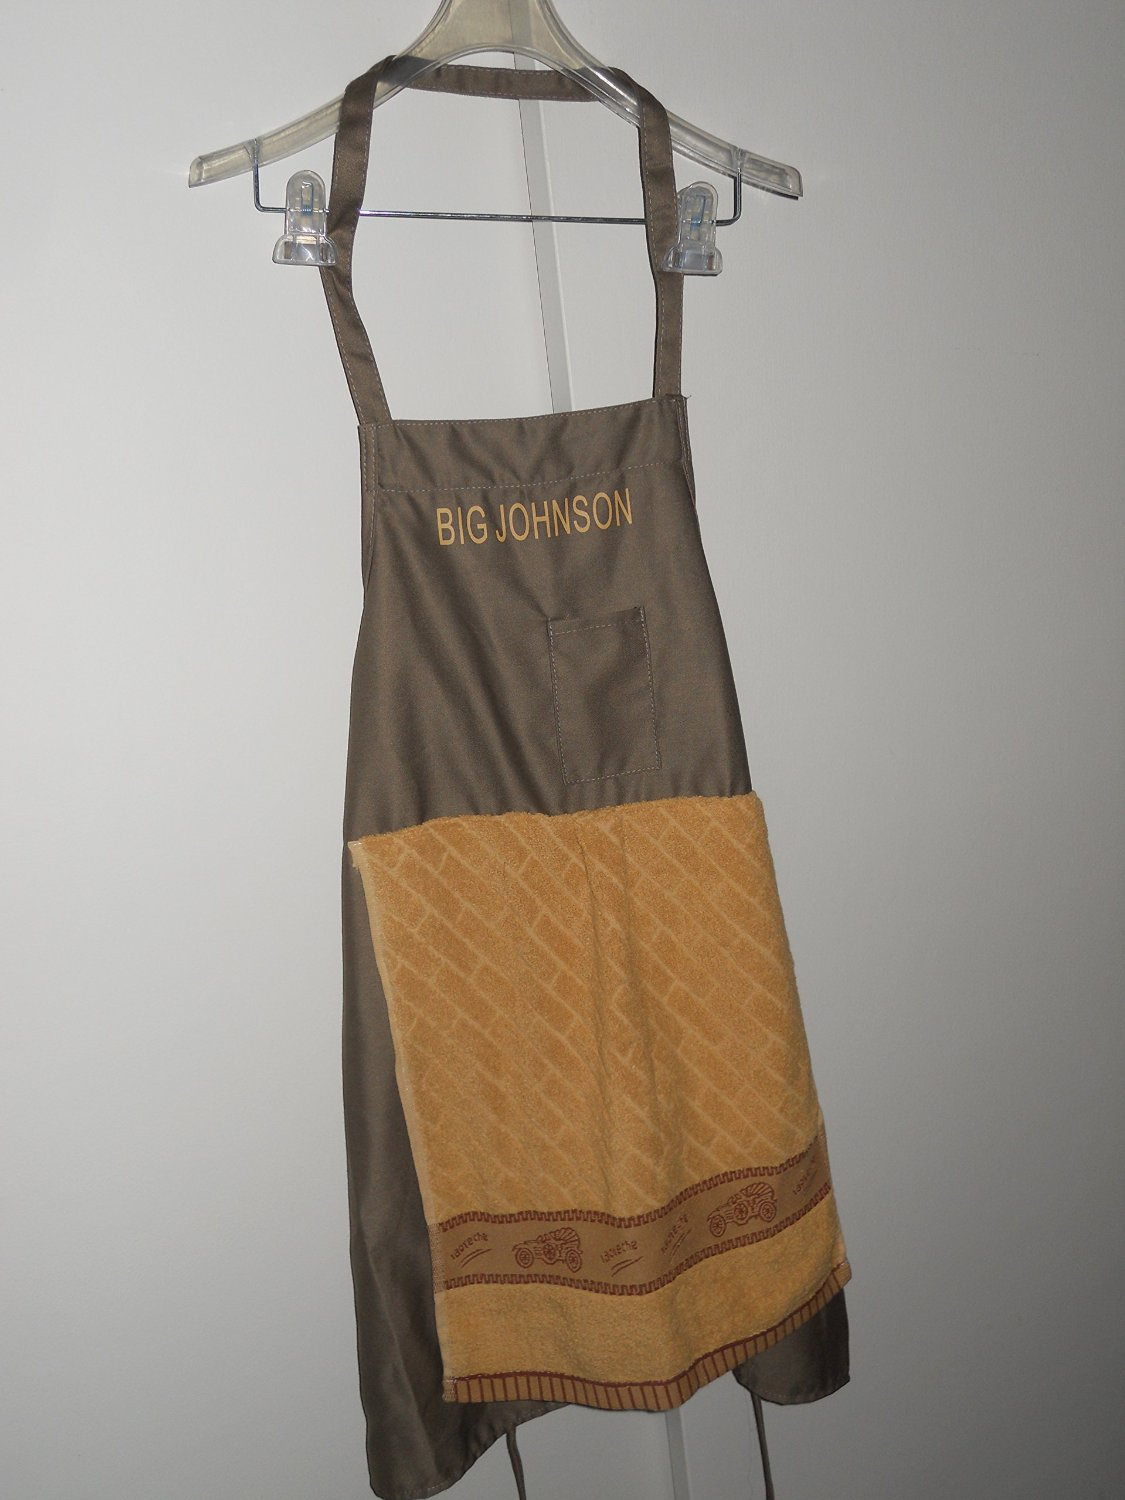 The BIG JOHNSON PARTY APRON NOVELTY FUNNY GAG GIFT SEXY